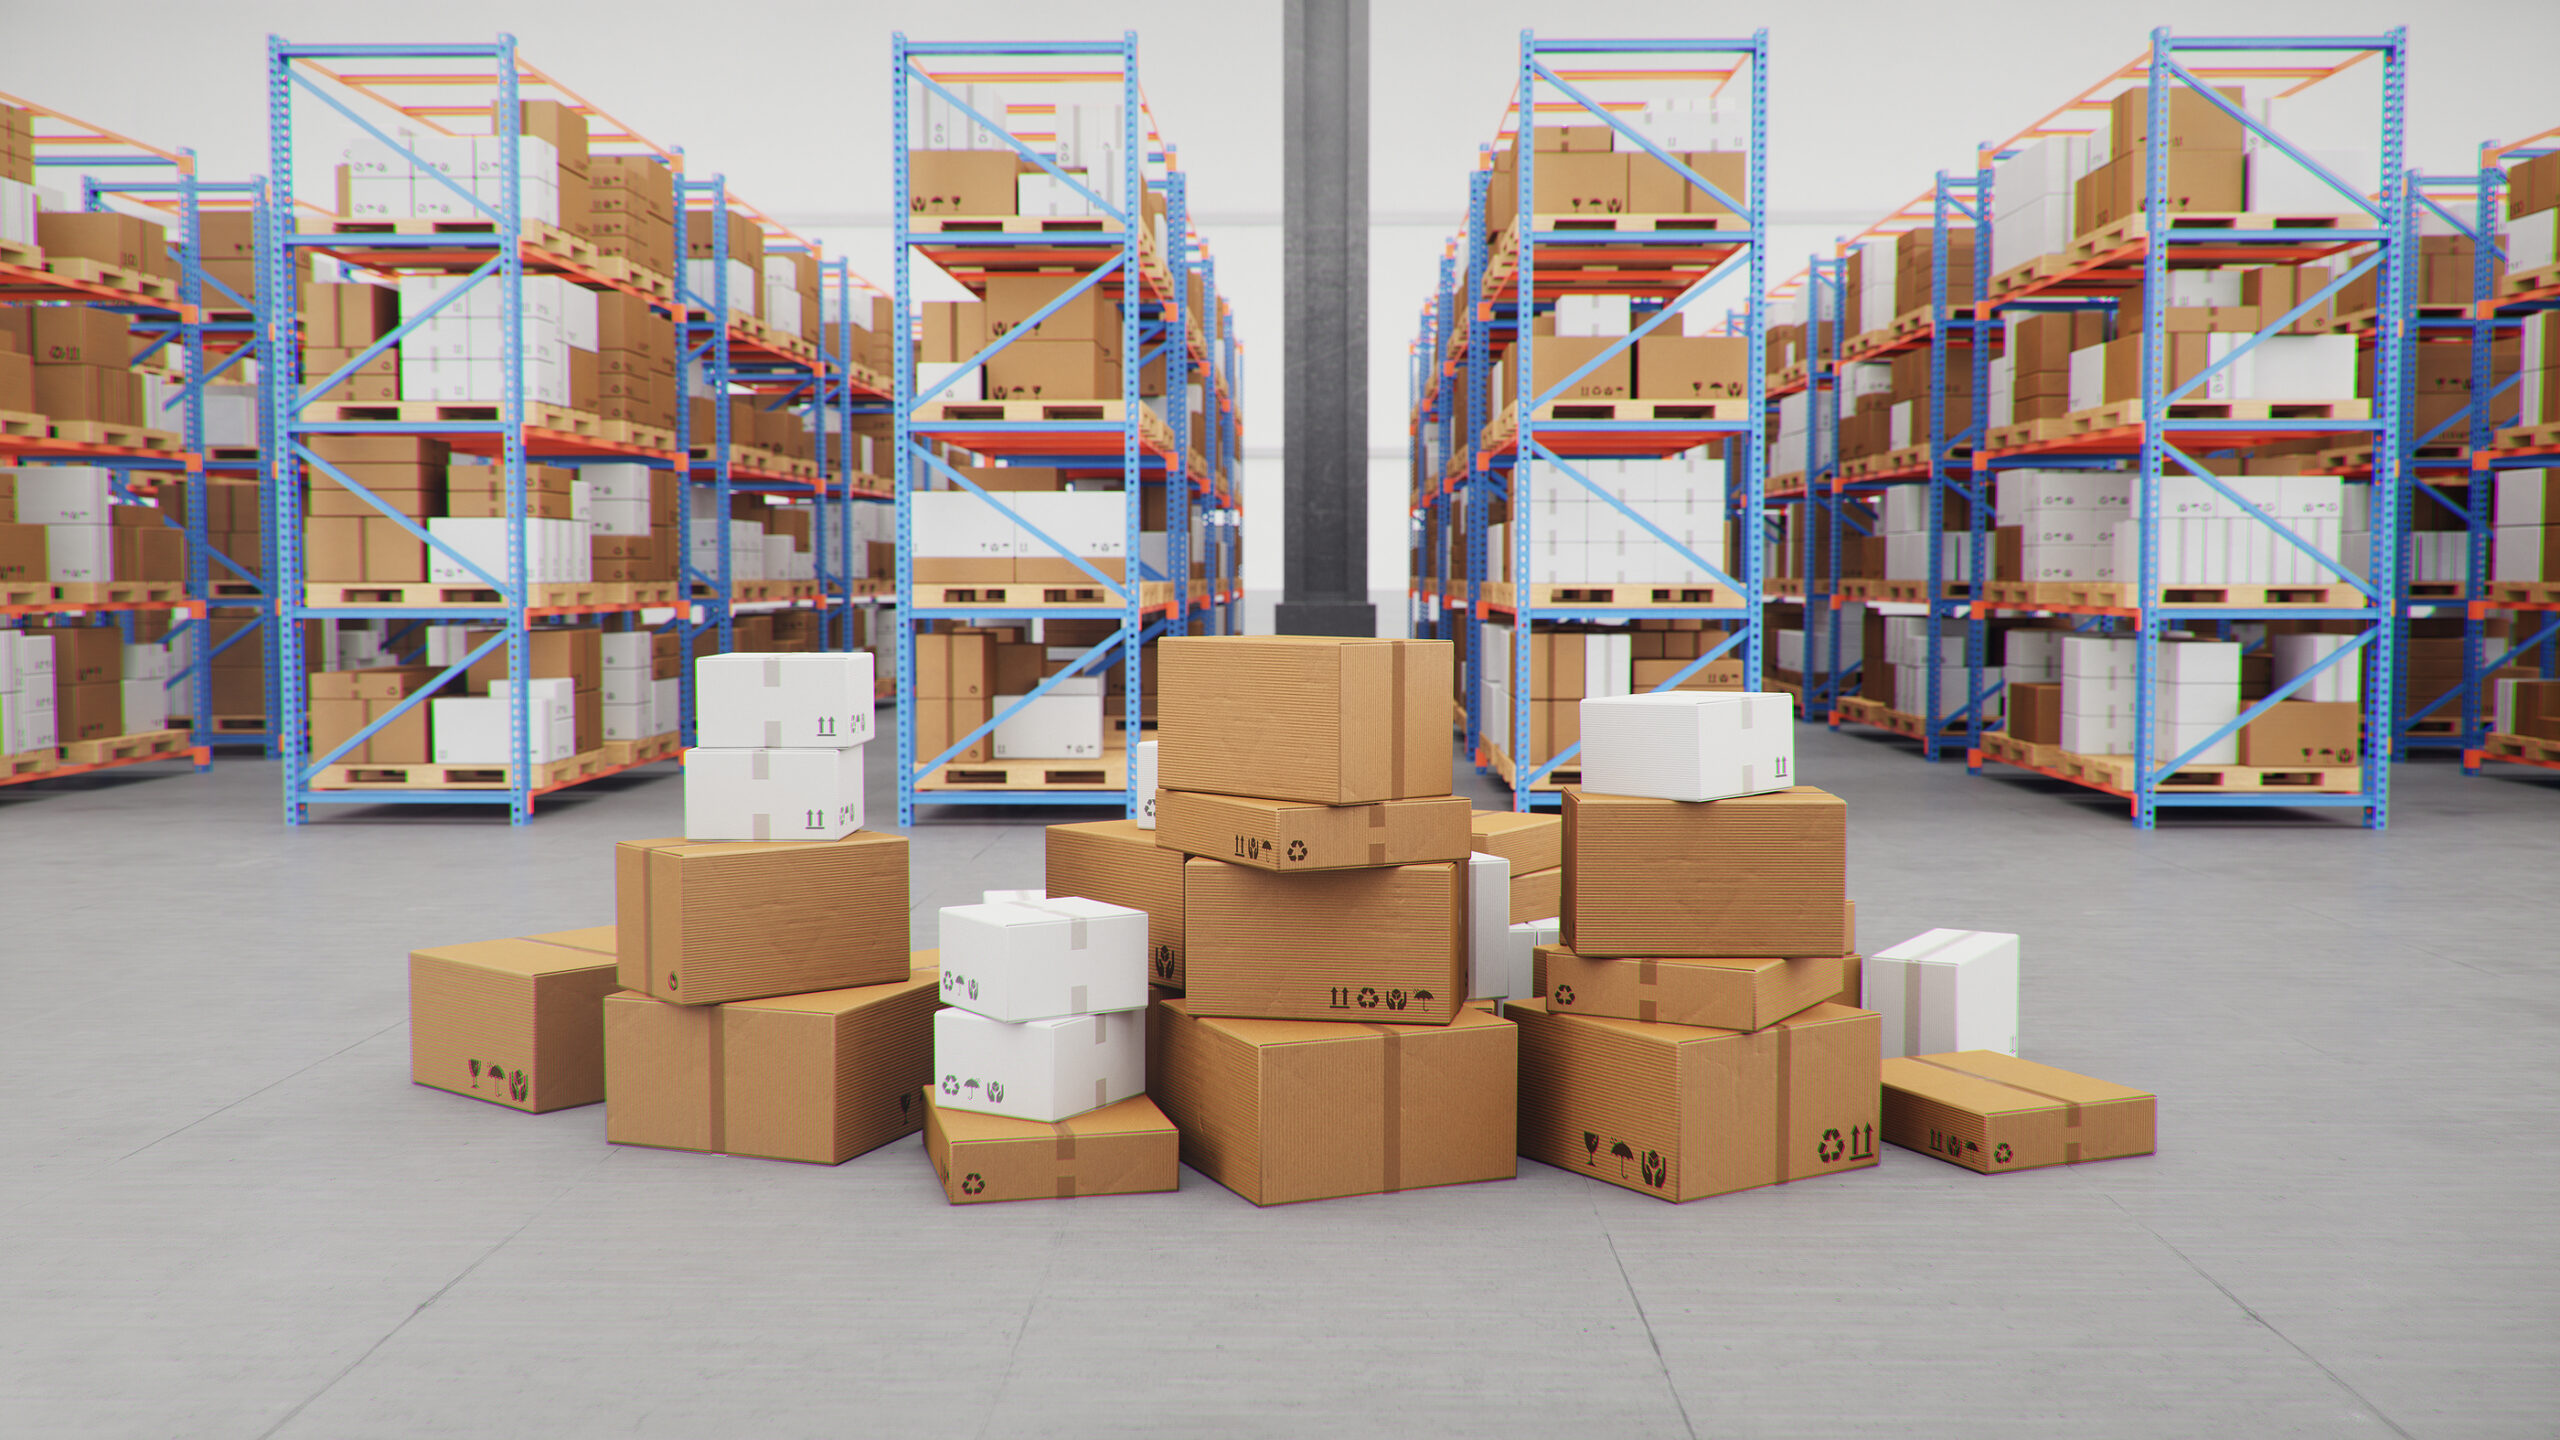 Packages in a logistics warehouse.